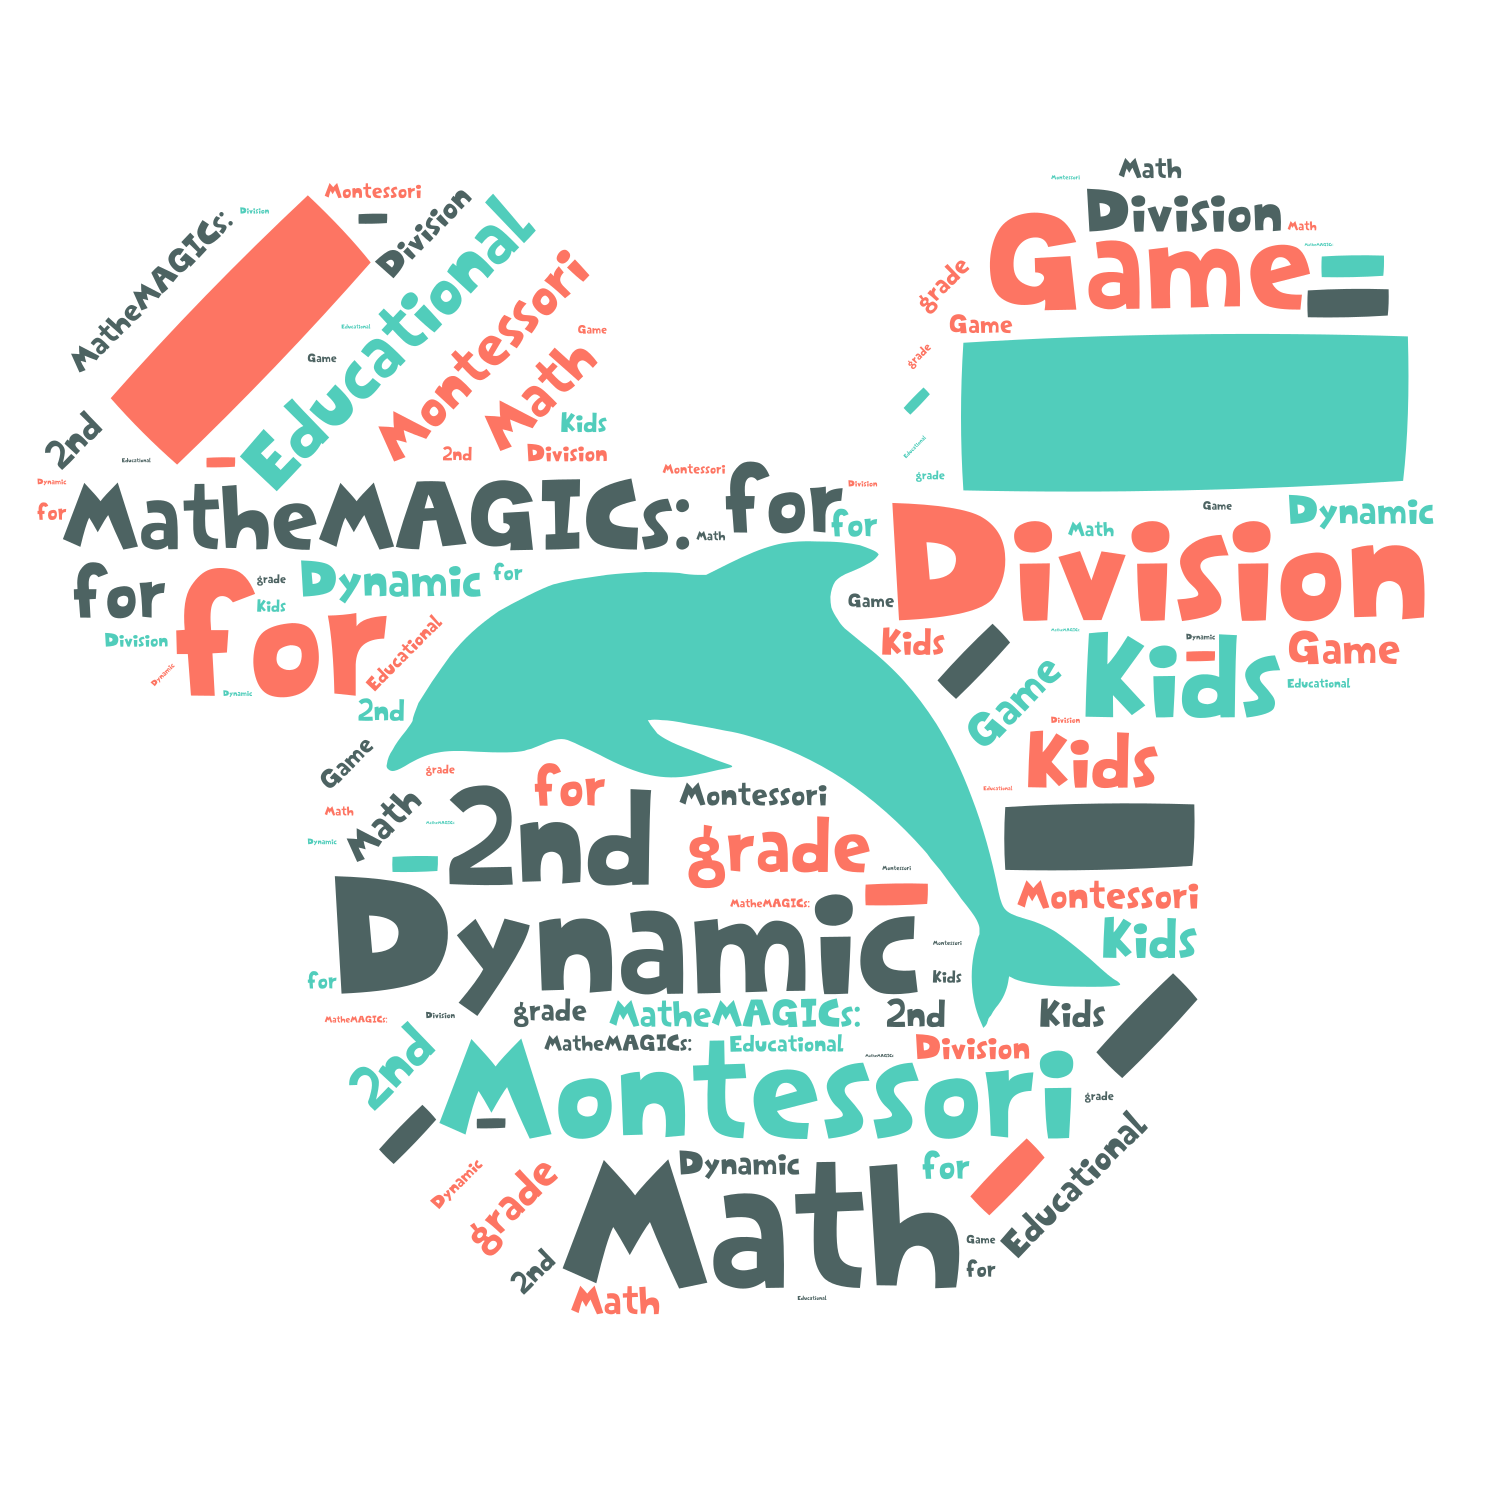 Montessori MatheMAGICs: Dynamic Division - Educational Math Game for Kids - 2nd grade